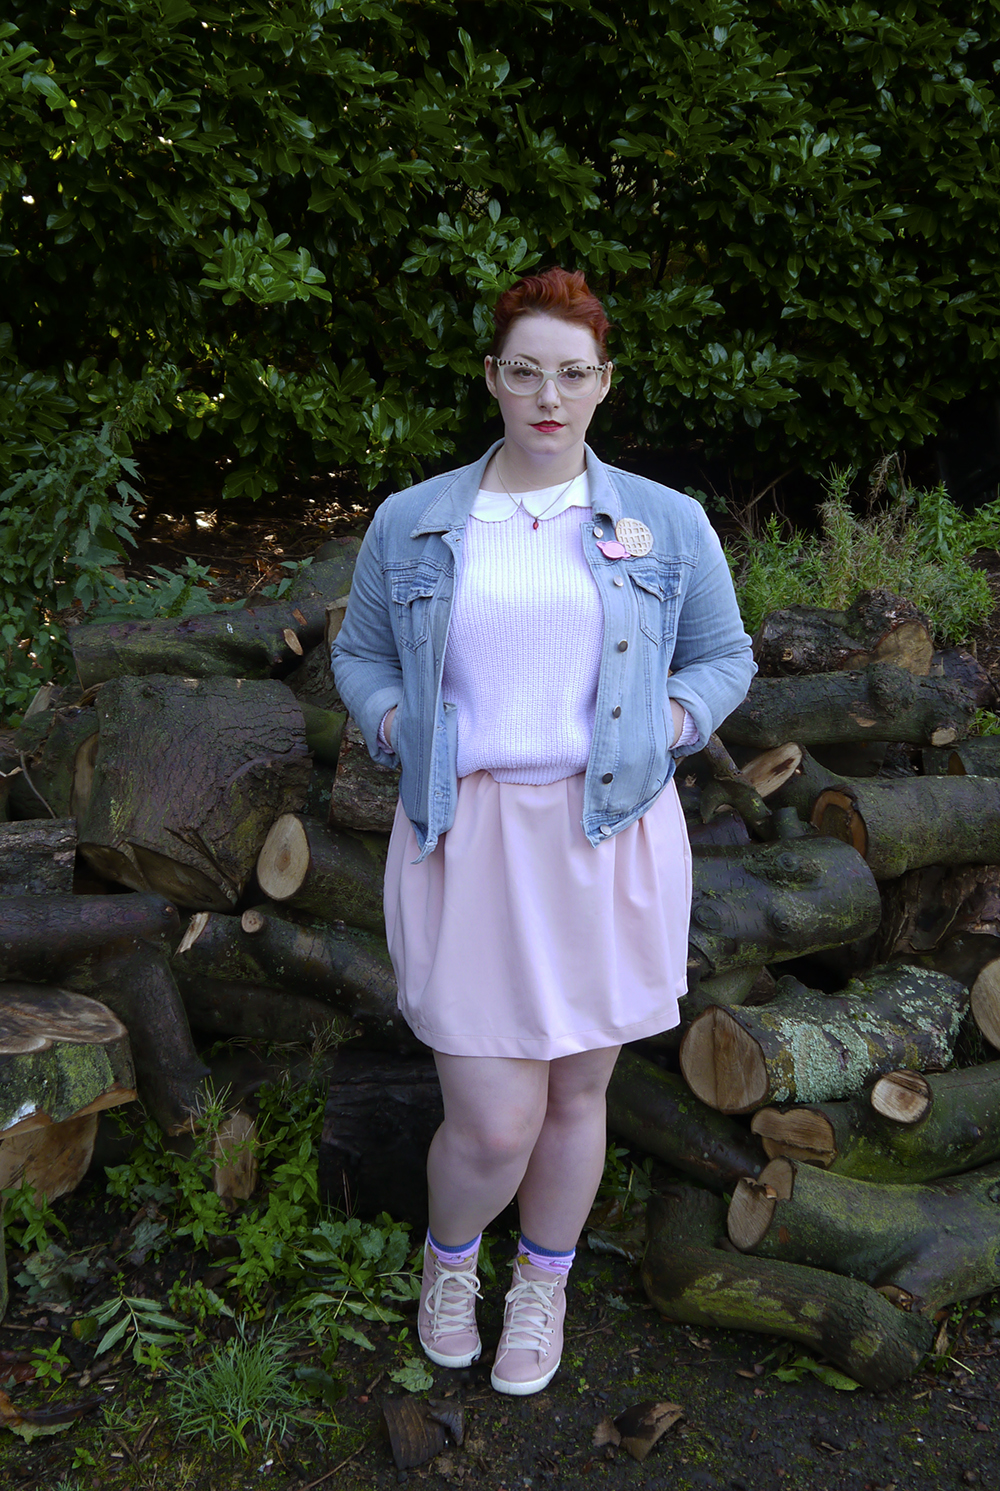 unlikely style icon, costume inspiration, Stranger Things, Eleven from Stranger Things, Stranger Things inspired outfit, Spex Pistols glasses, Cheap Frills christmas light necklace, denim jacket, pink outfit, Eat Me do socks , Wear Eponymous skirt, Eggo brooch, bonnie bling brooch, Lucky Dip club brooch